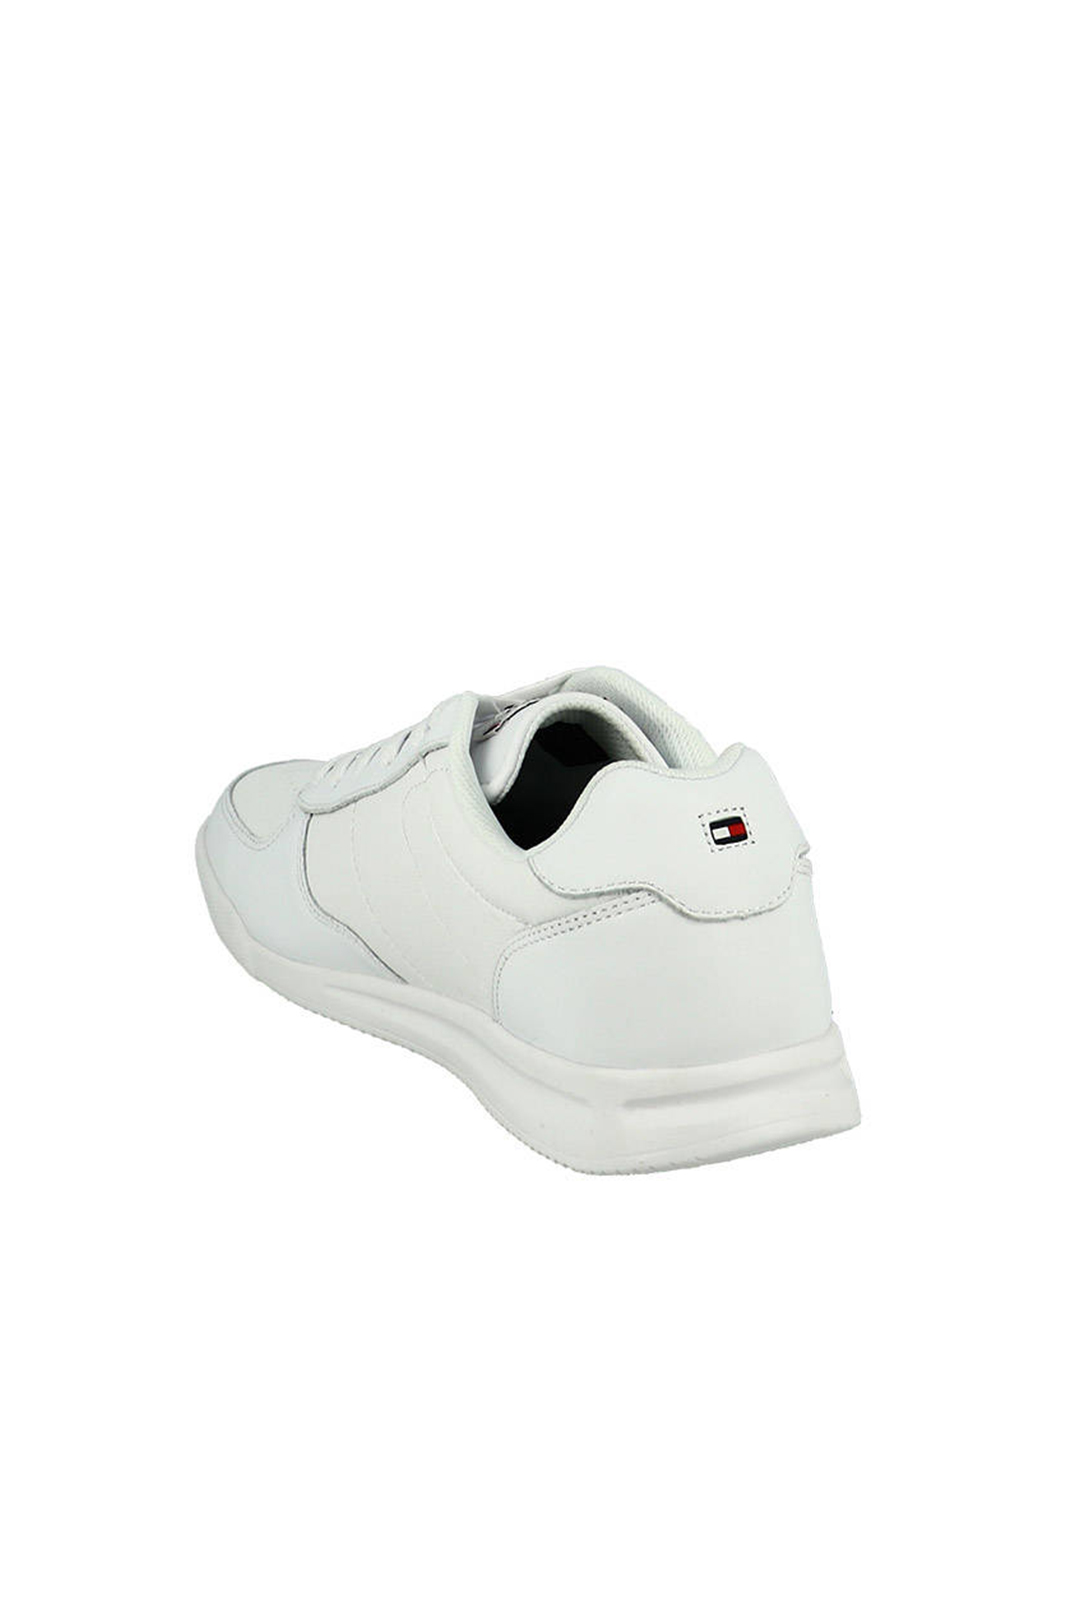 Baskets / Sport  Tommy Jeans FM0FM02556 YBS White